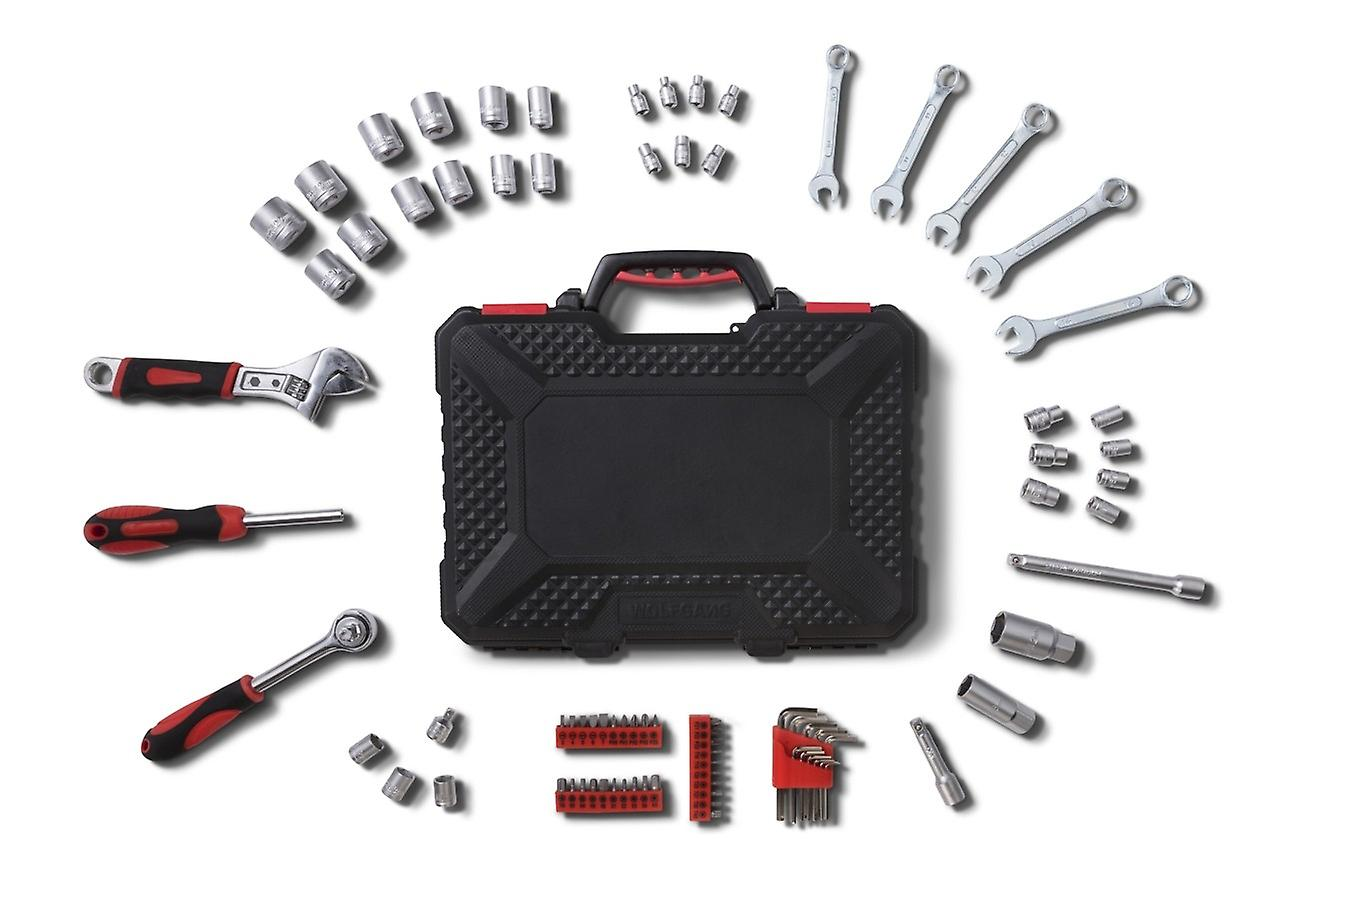 WOLFGANG 83 Parts Tool Case with Tool Set , Screwdriver, Wrench, Socket Set, Ratchet , For Home, Car Car, Workshop, Industry, Toolbox Filled - 83 Parts